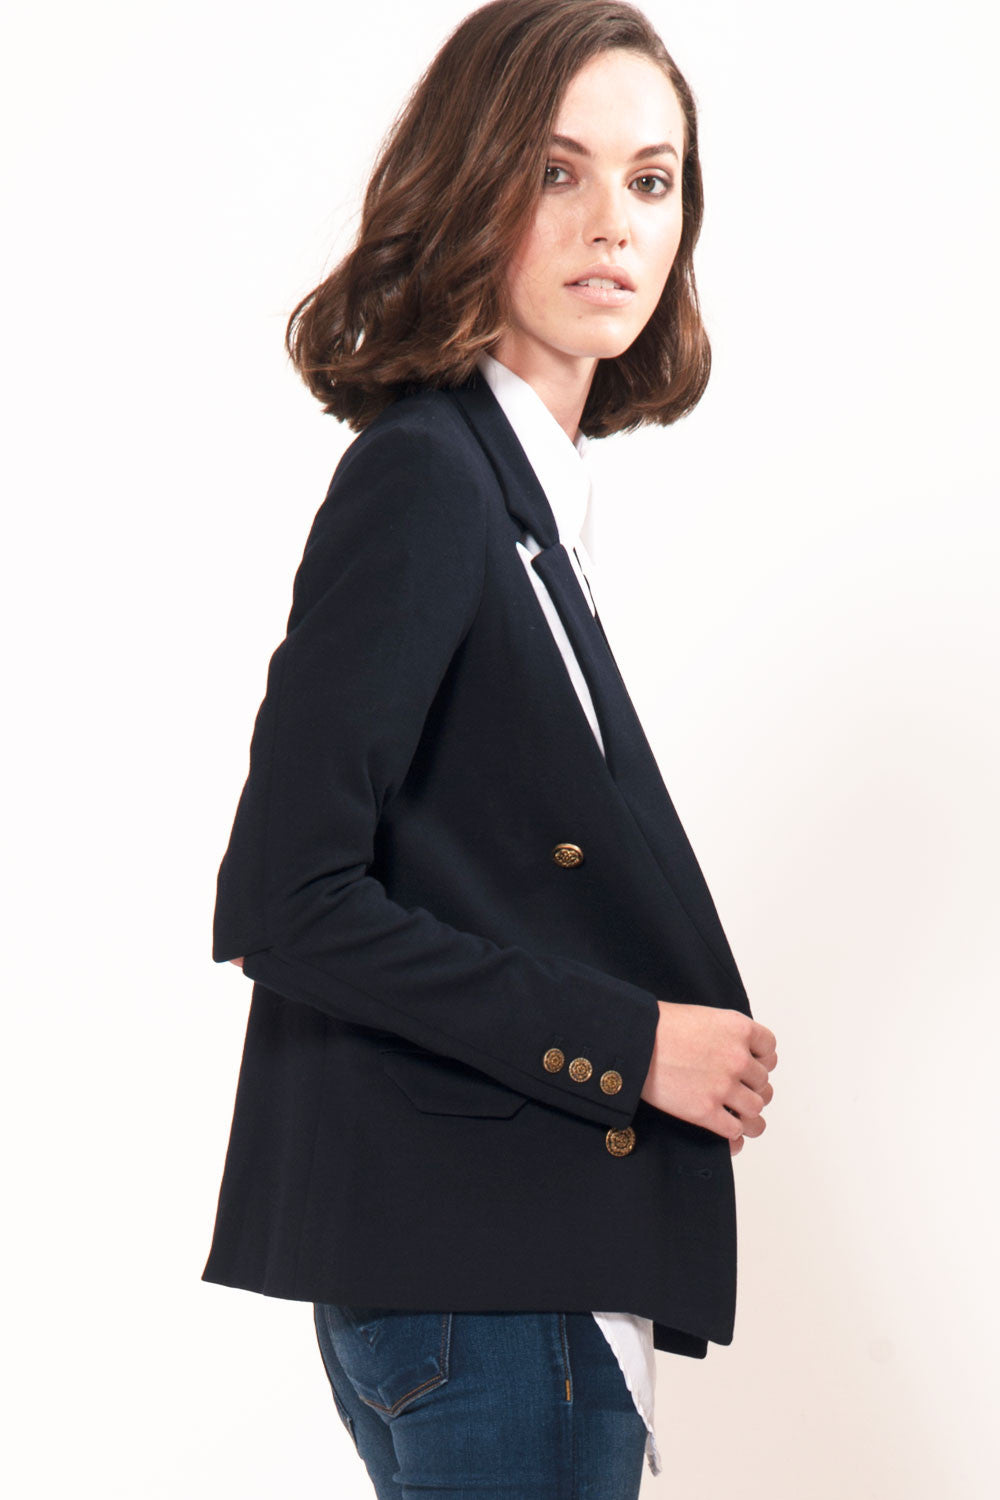 Cutout Blazer - Primary New York